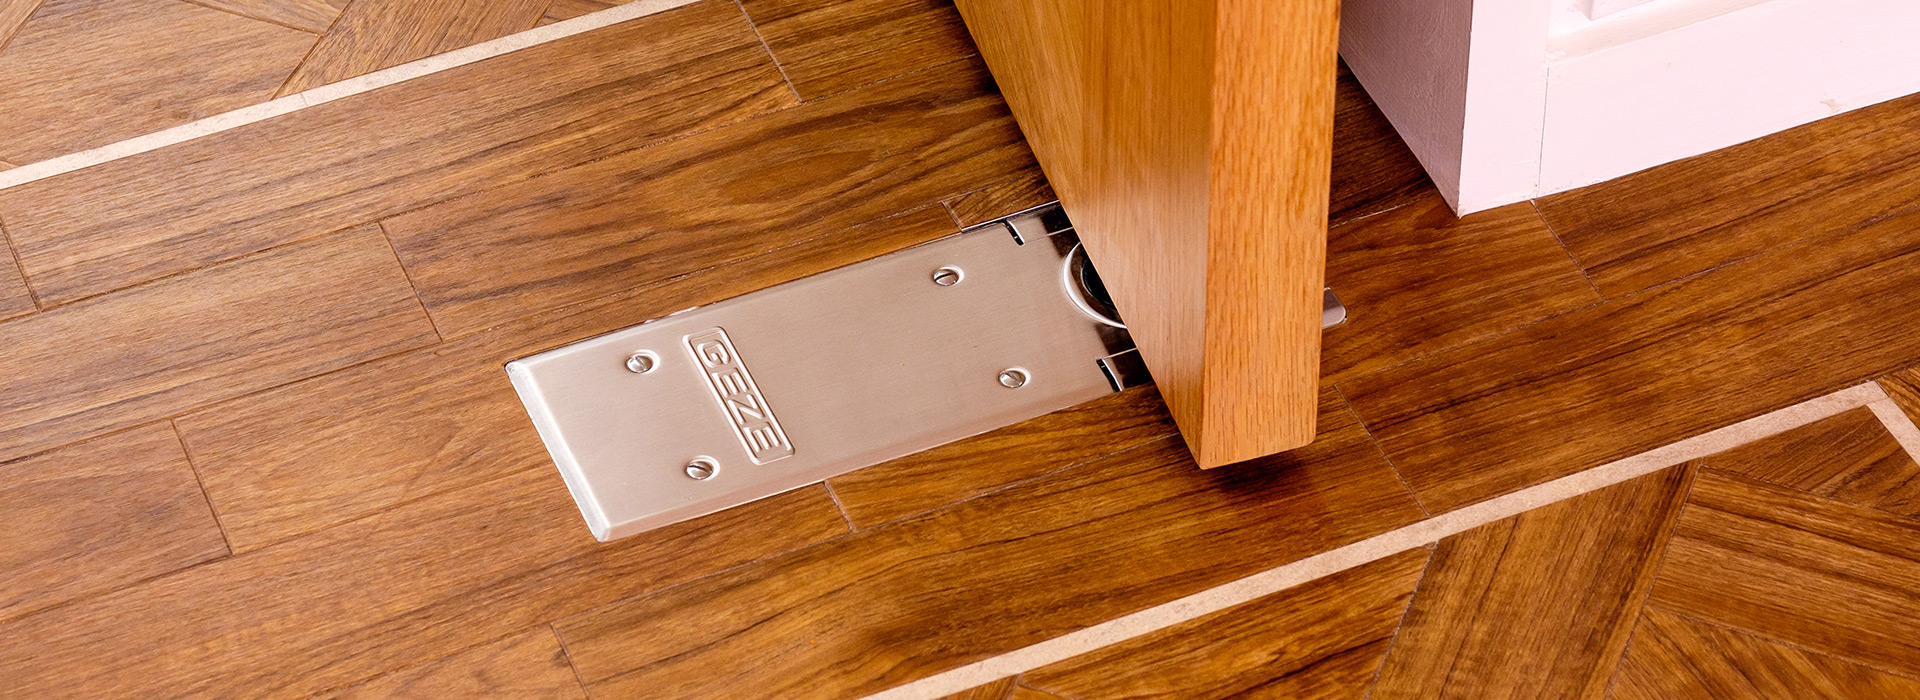 Brushed stainless steel door stop